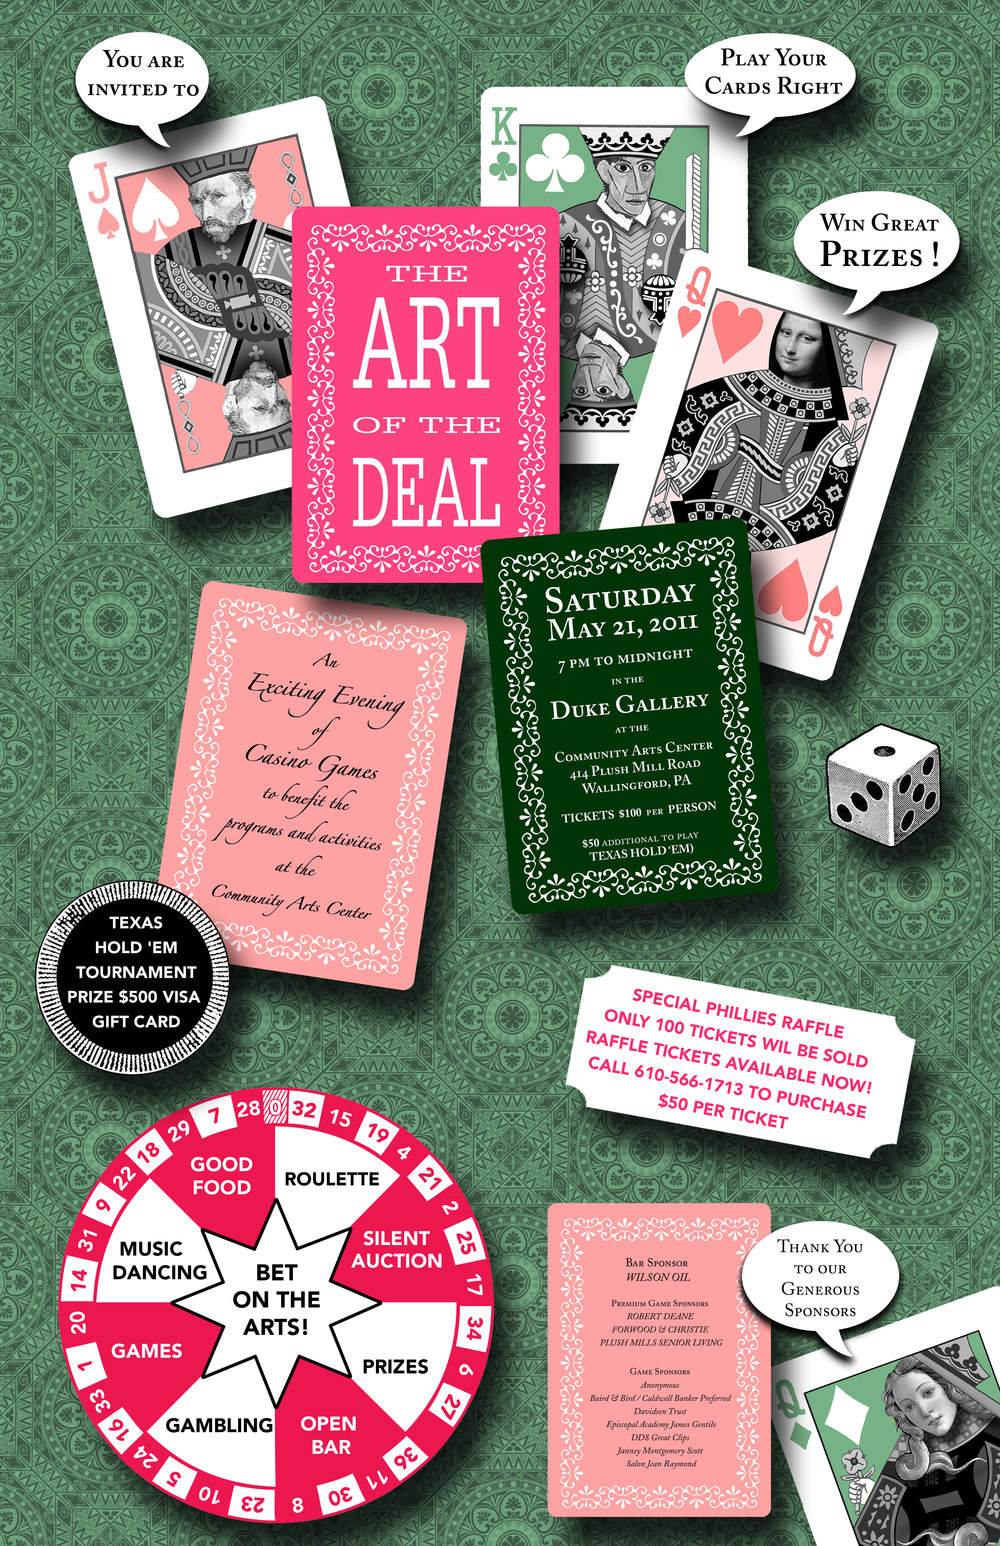 2 ART of DEAL POSTER.jpg